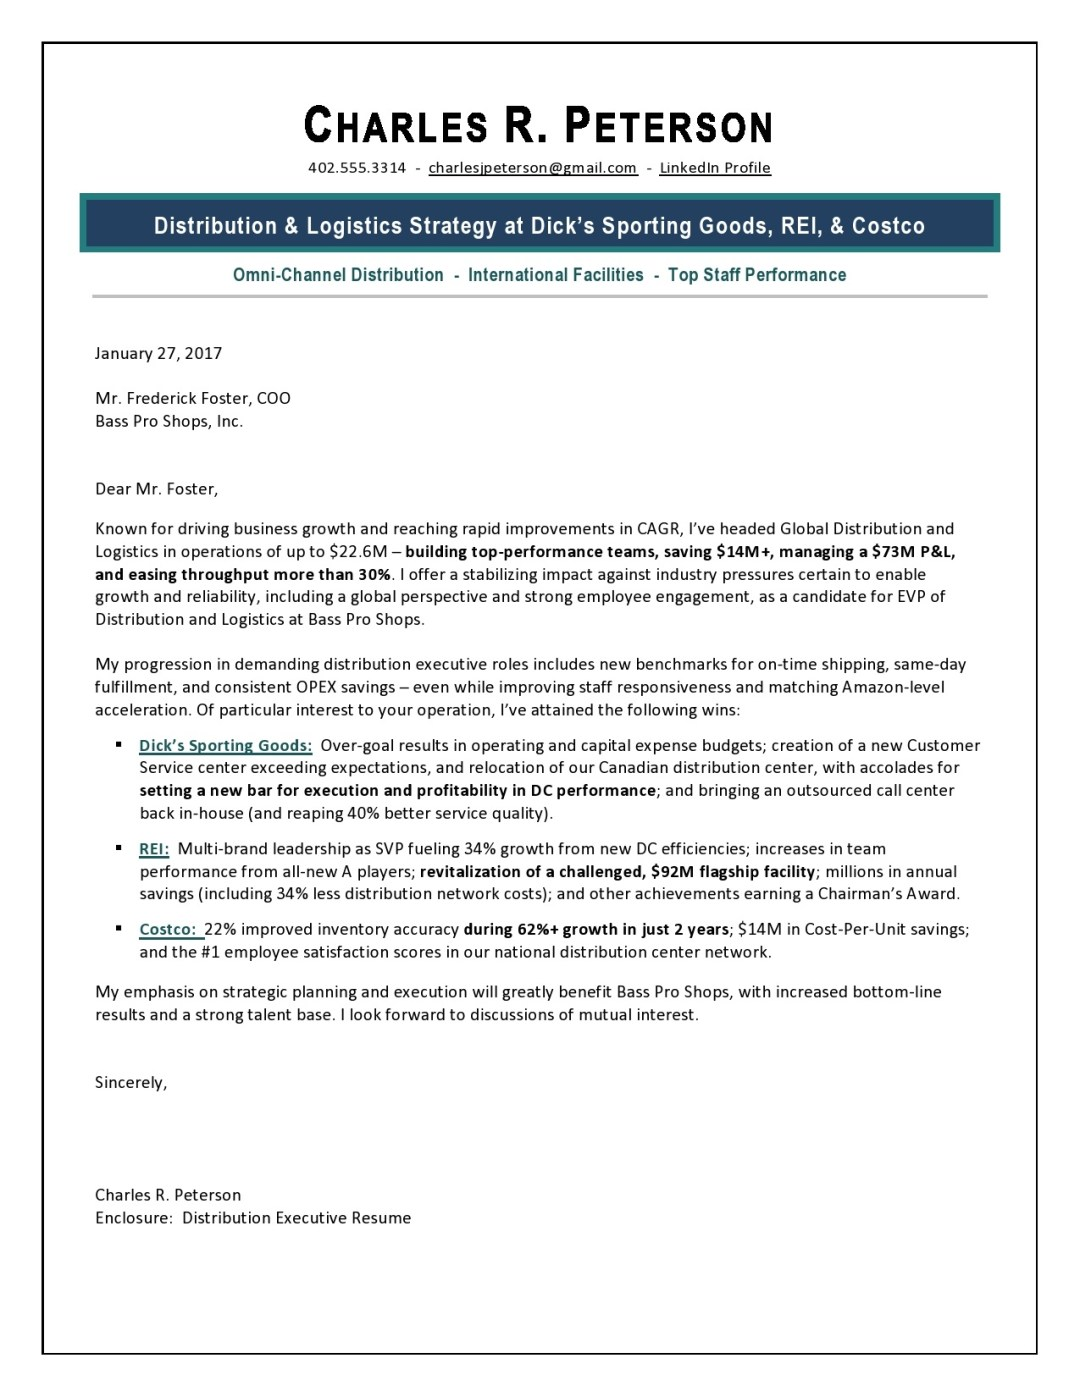 VP Corporate Strategy Cover Letter Sample